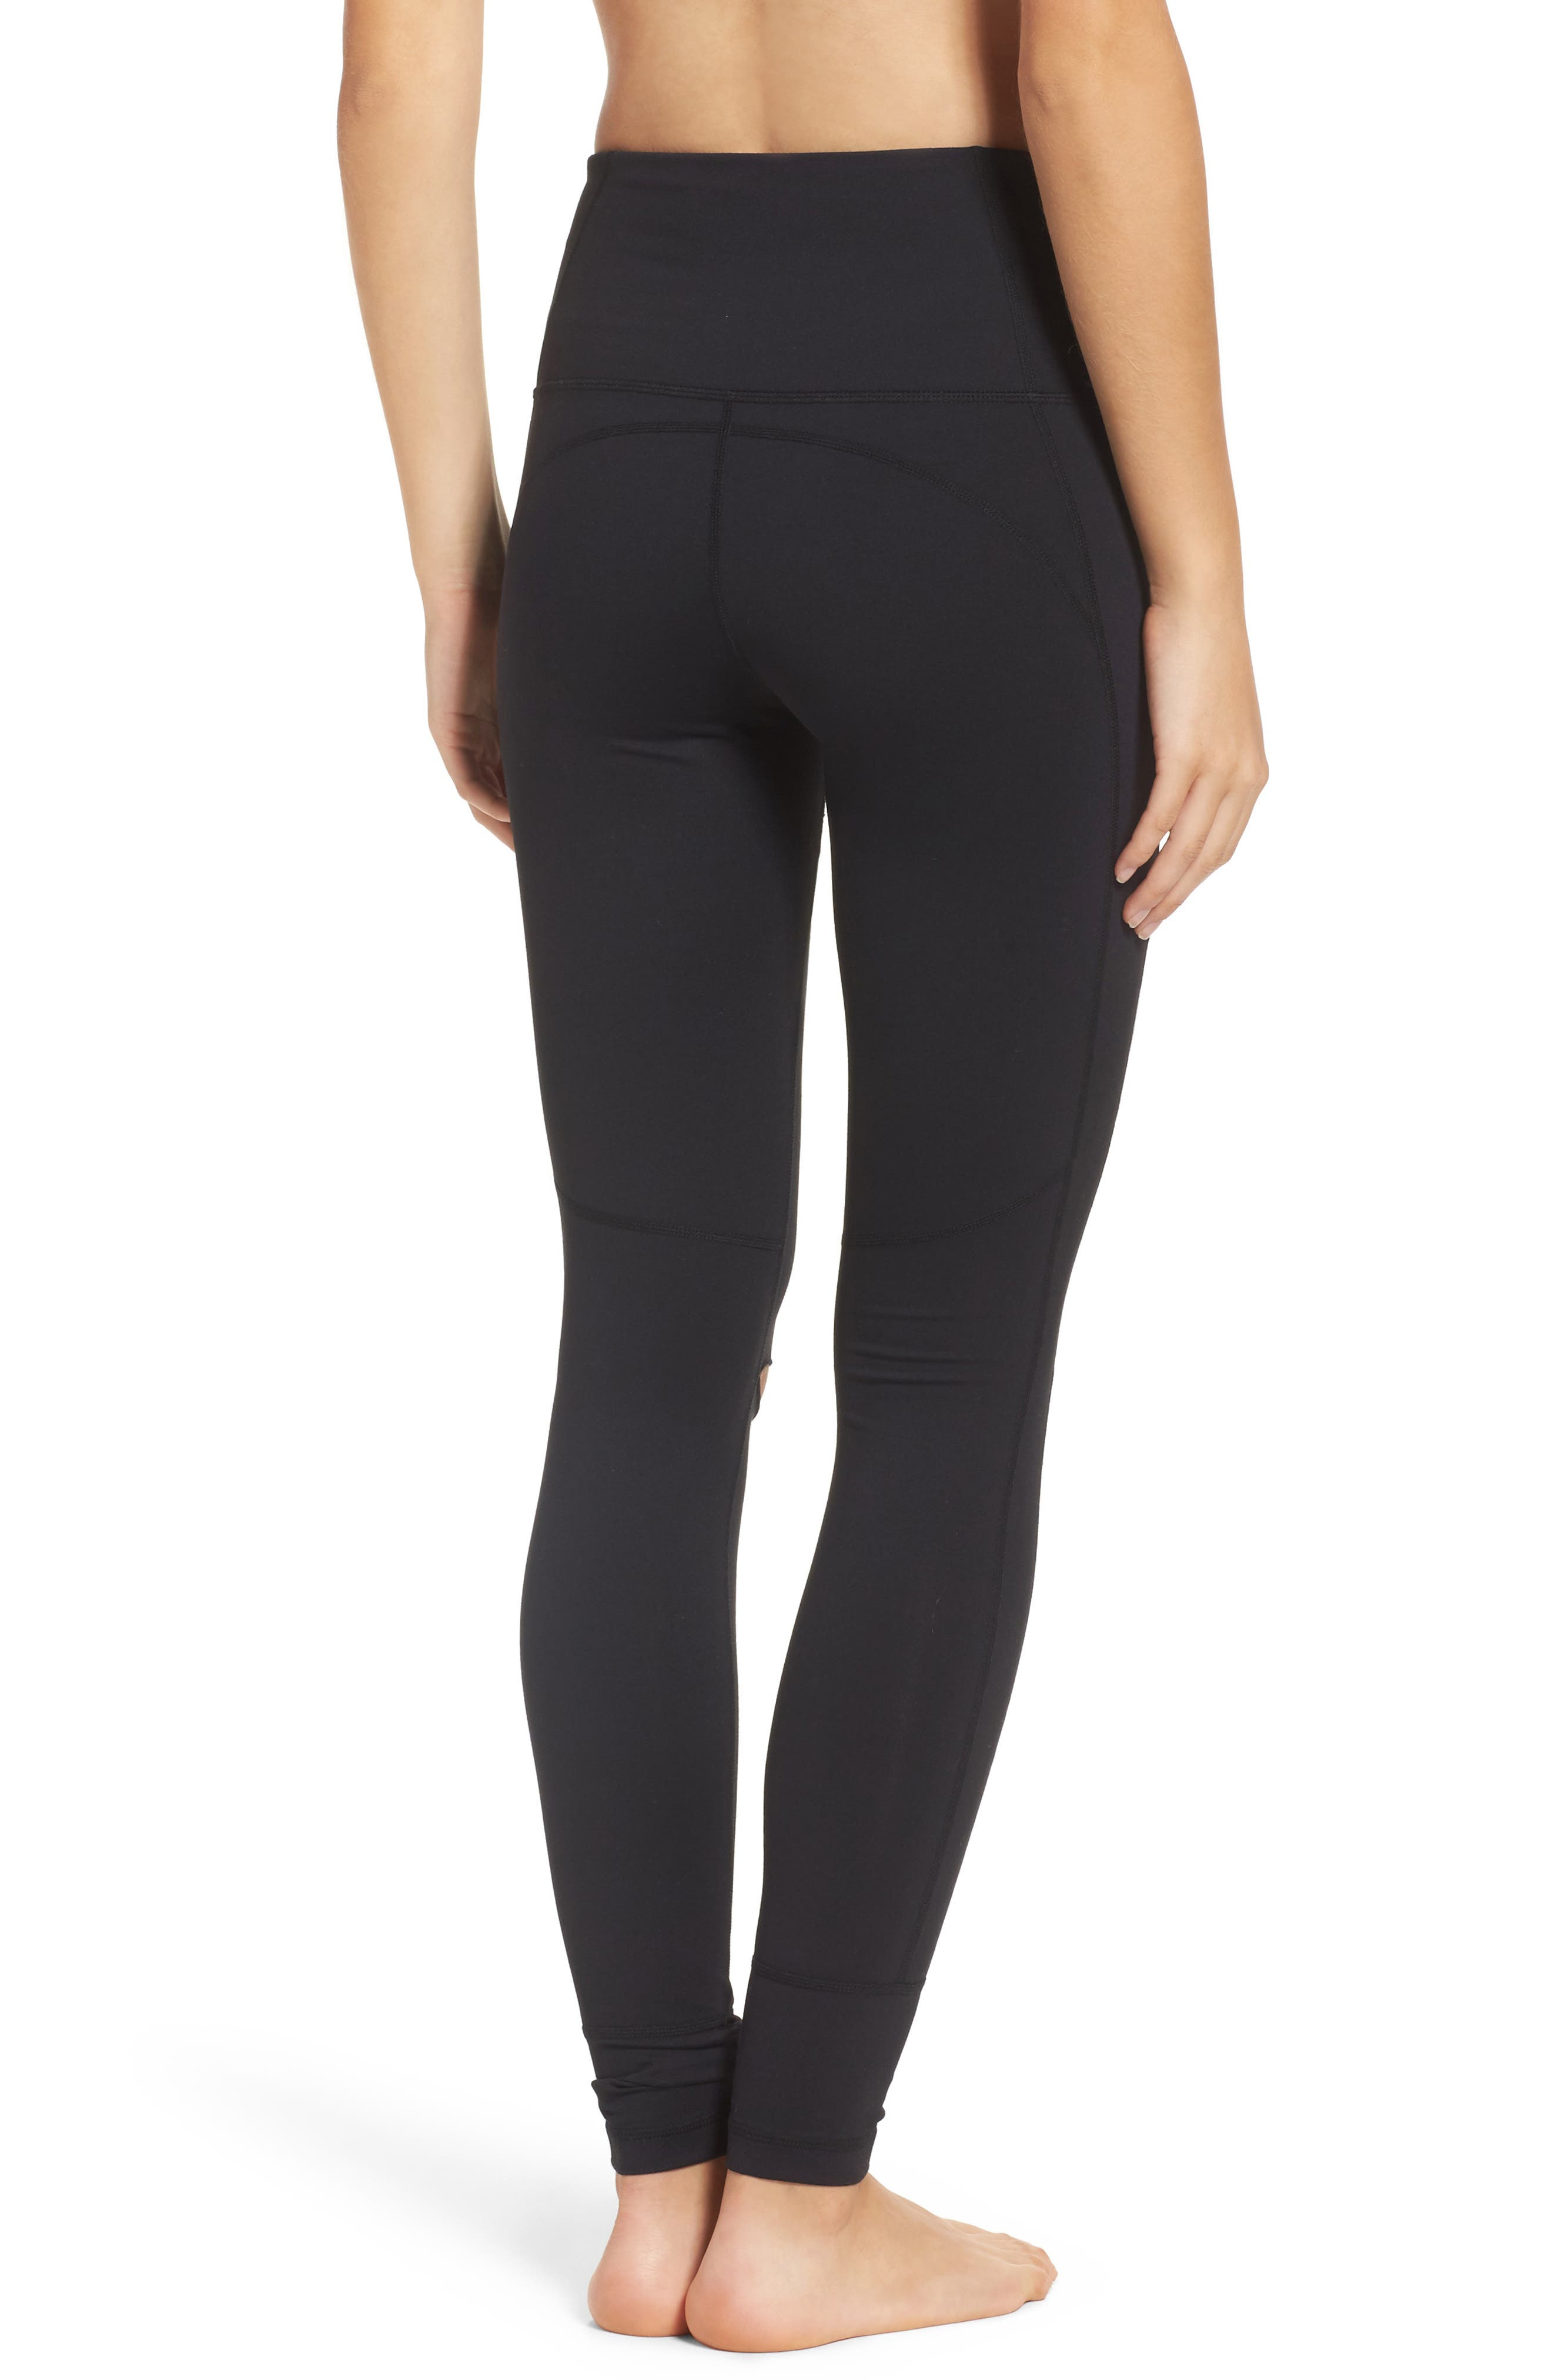 Alternate Image 2  - Zella Cece High Waist Open Knee Leggings